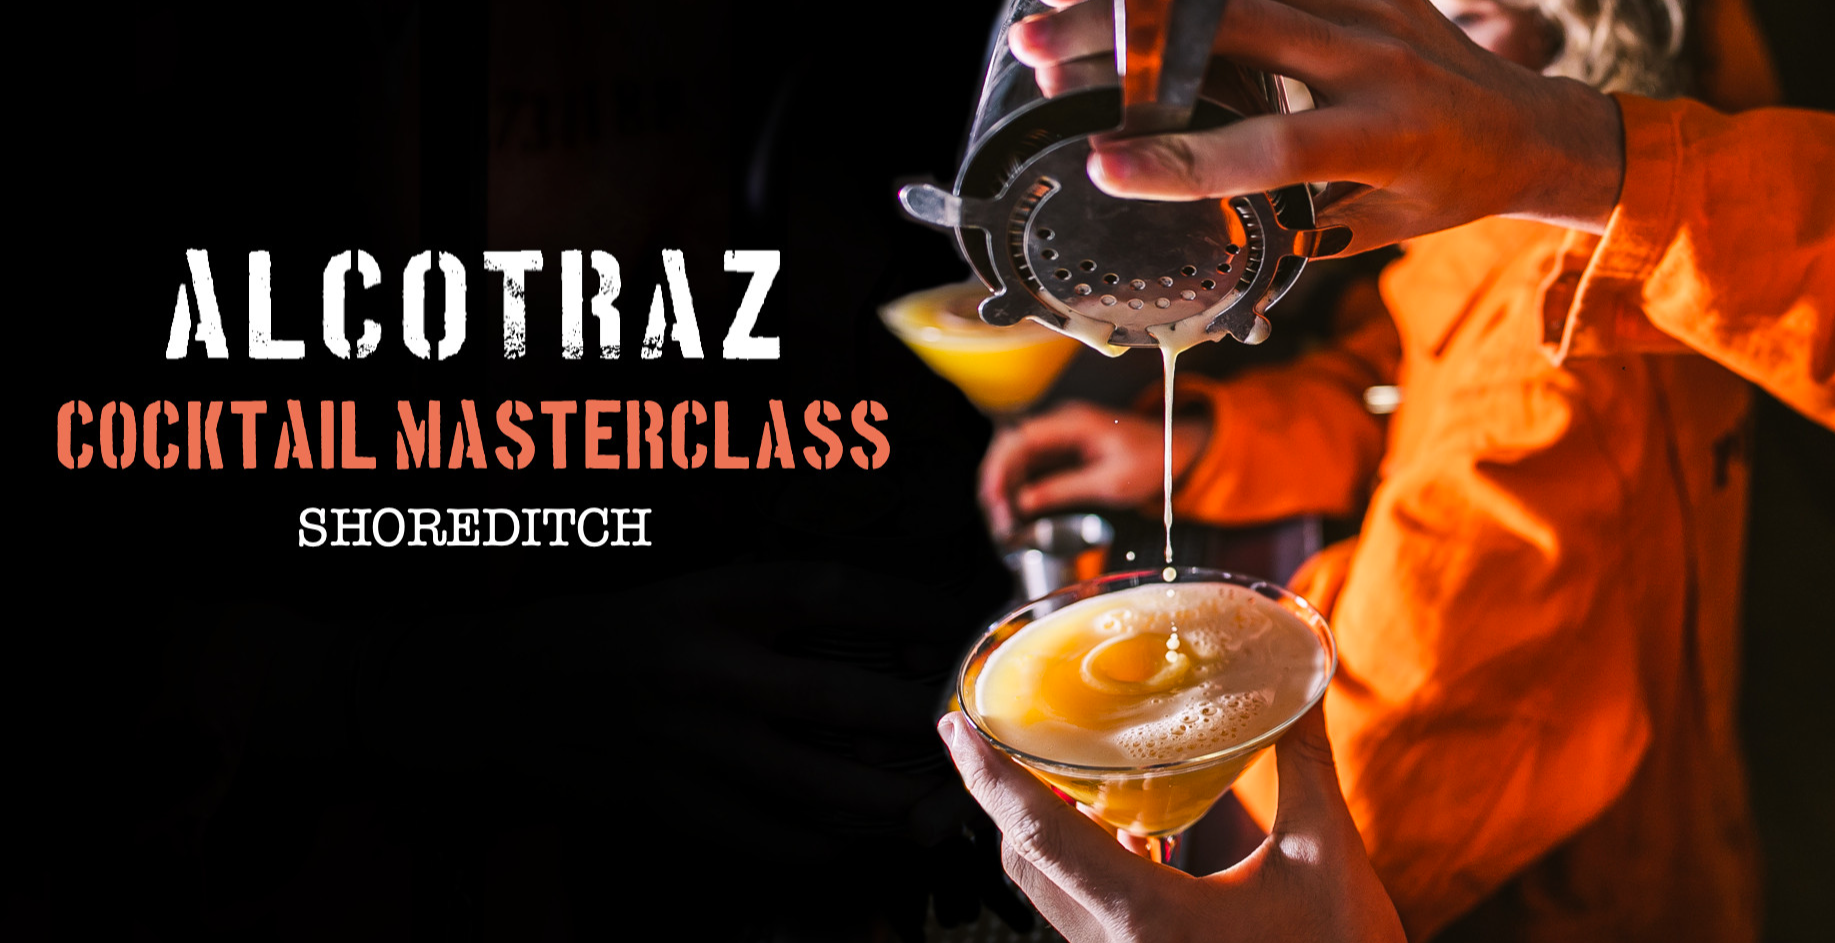 Alcotraz Cocktail Masterclass (Shoreditch)